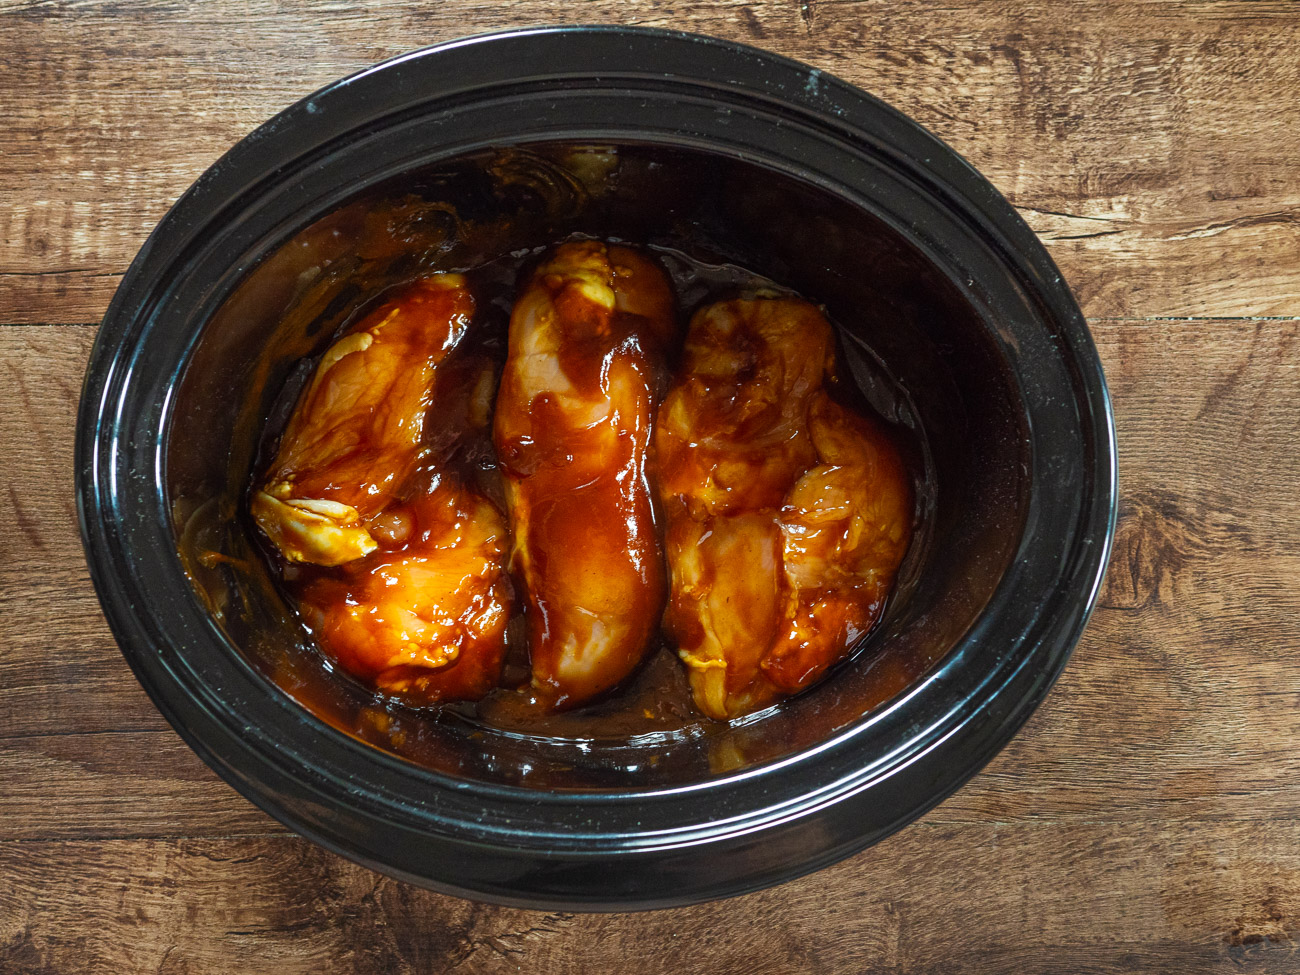 Place chicken in Crock Pot. Pour in oil and flip chicken to coat. Cover with barbecue sauce.